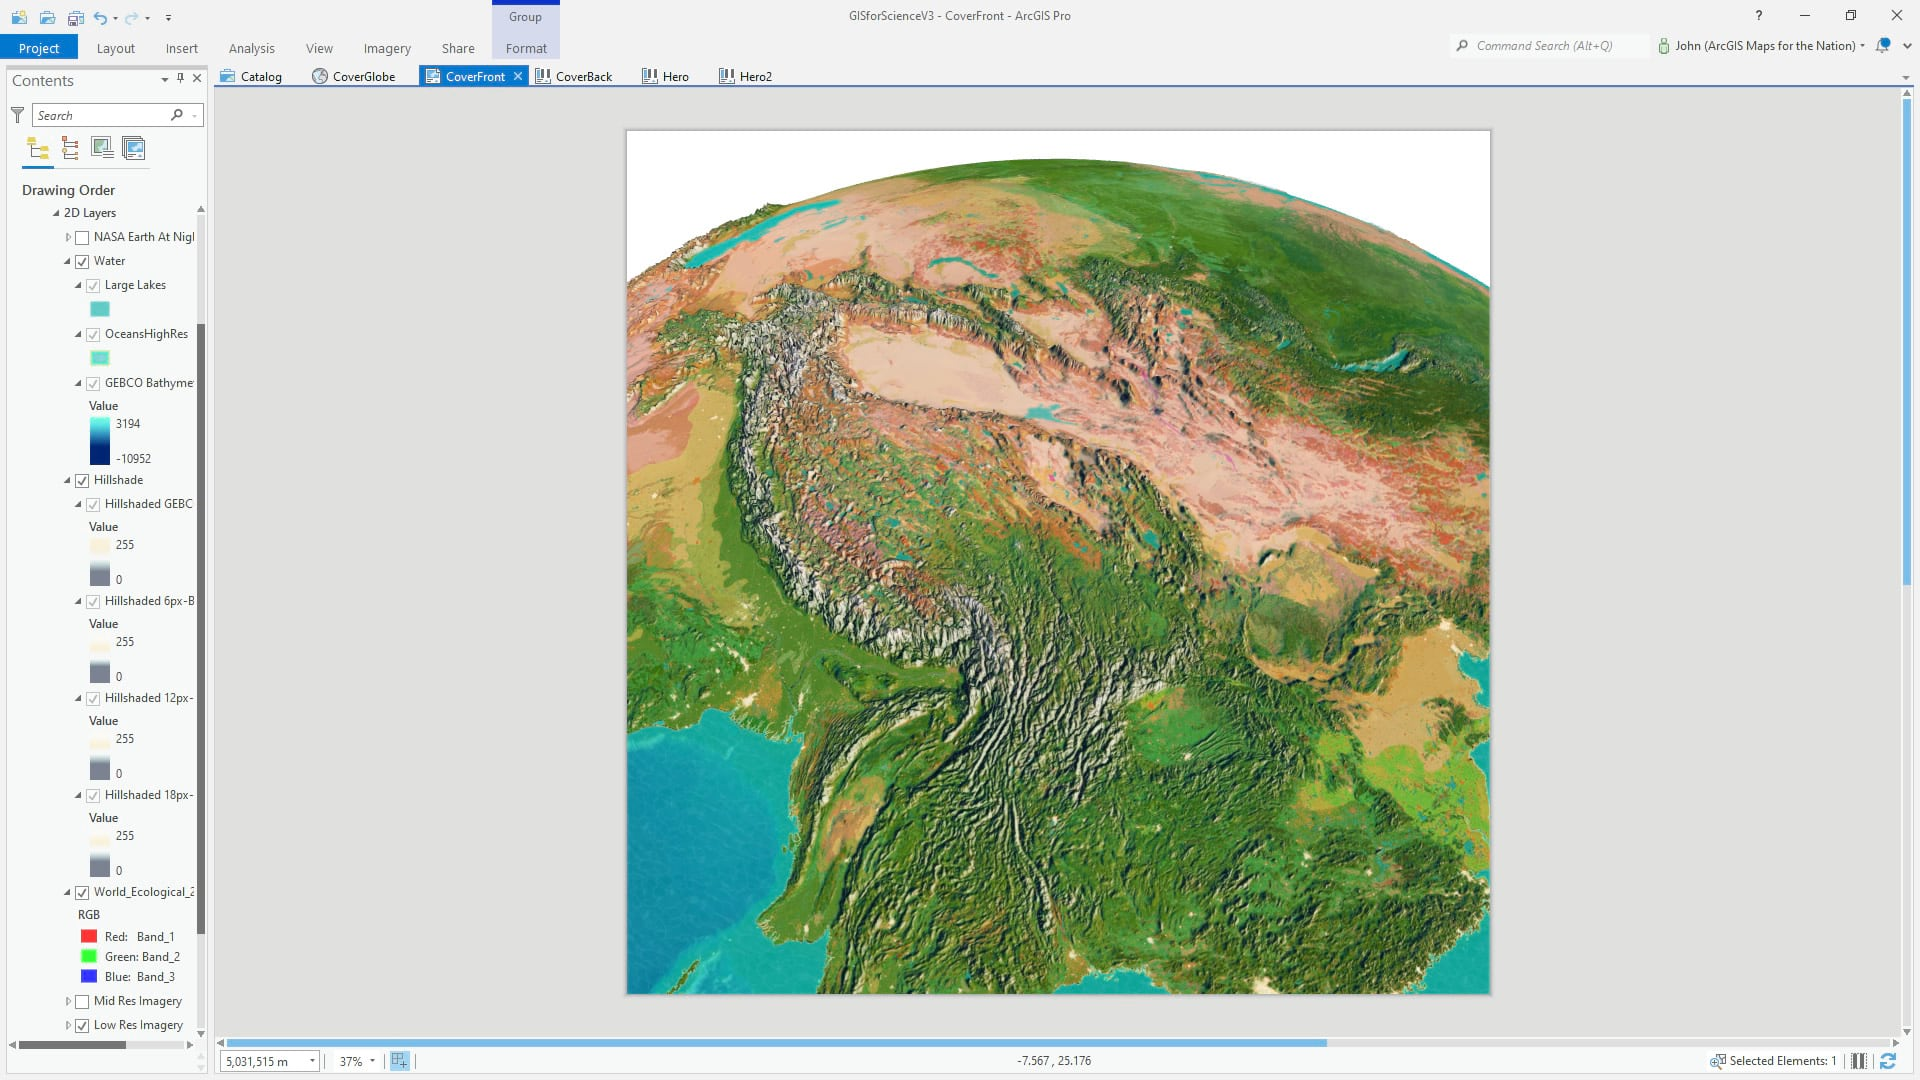 ArcGIS Pro 3D global scene with water ripples.